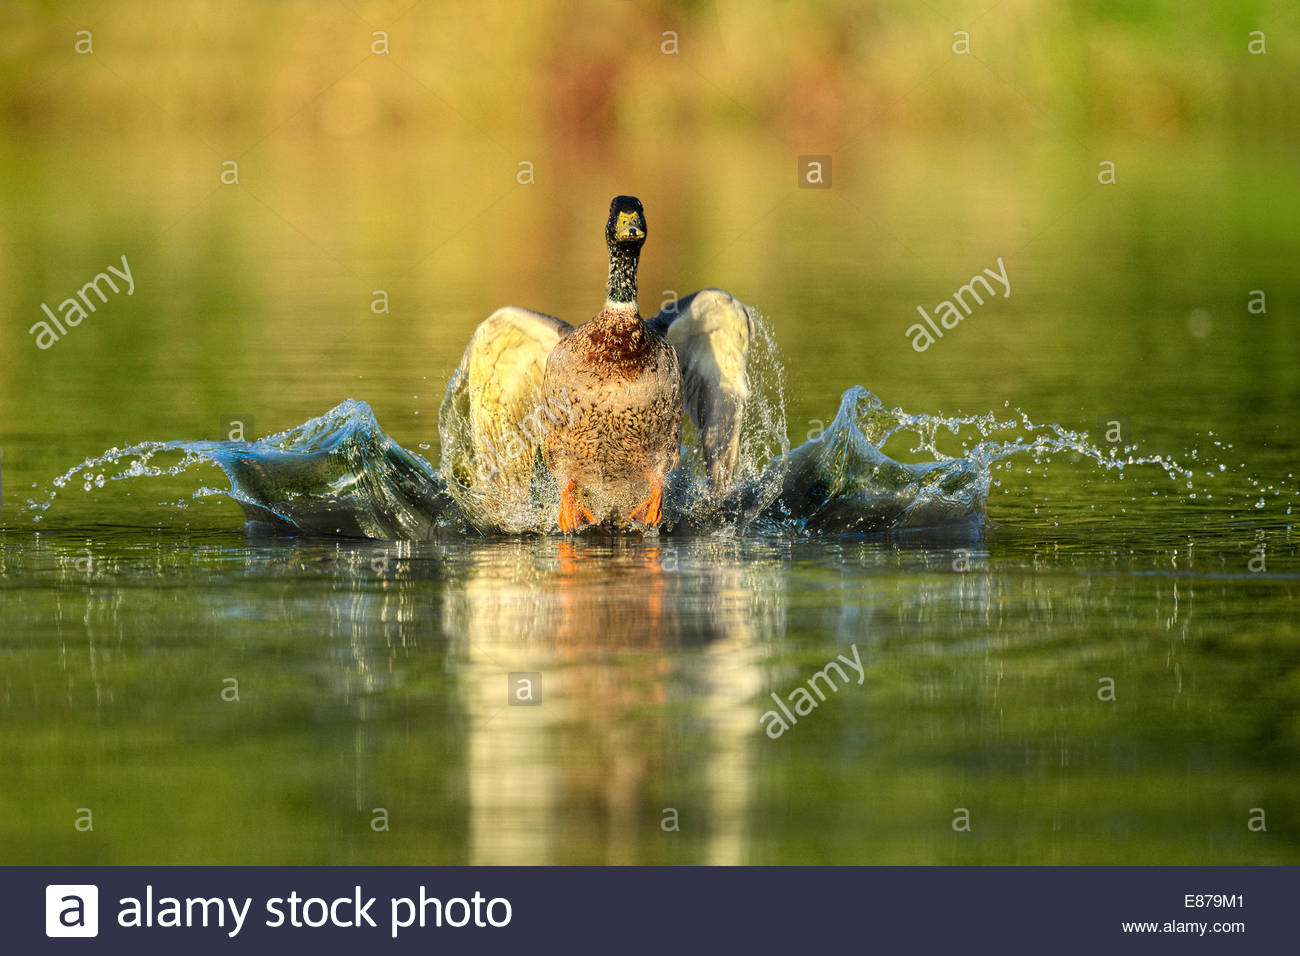 A Mallard Duck landing in a pond with a splash - Stock Image